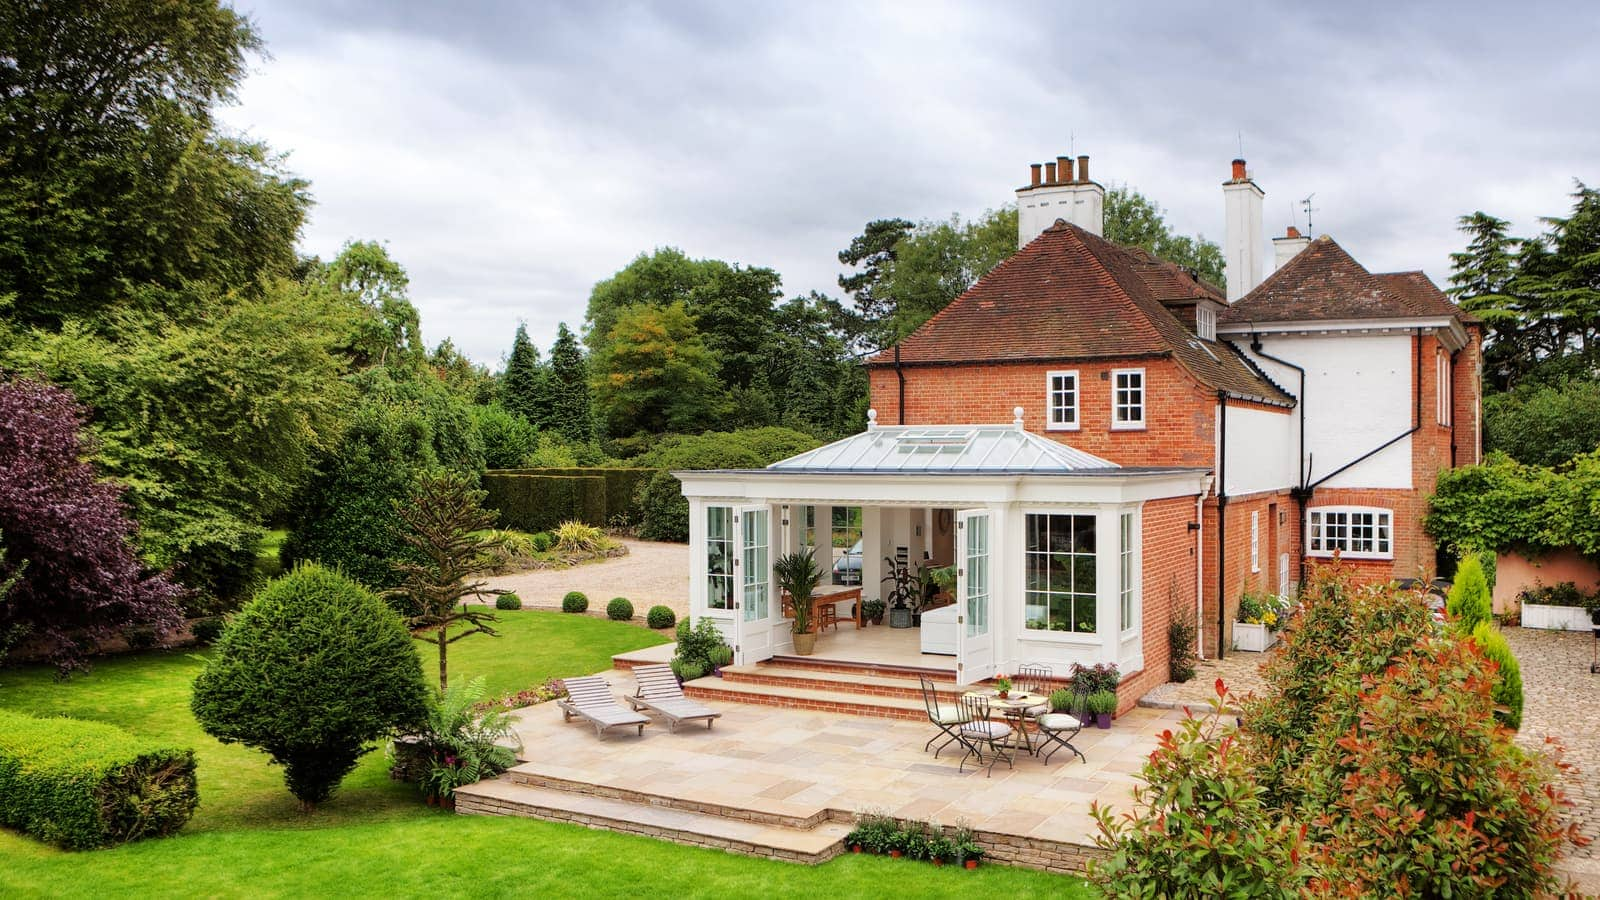 Orangery extension with double folding stacking doors overlooking stunning garden